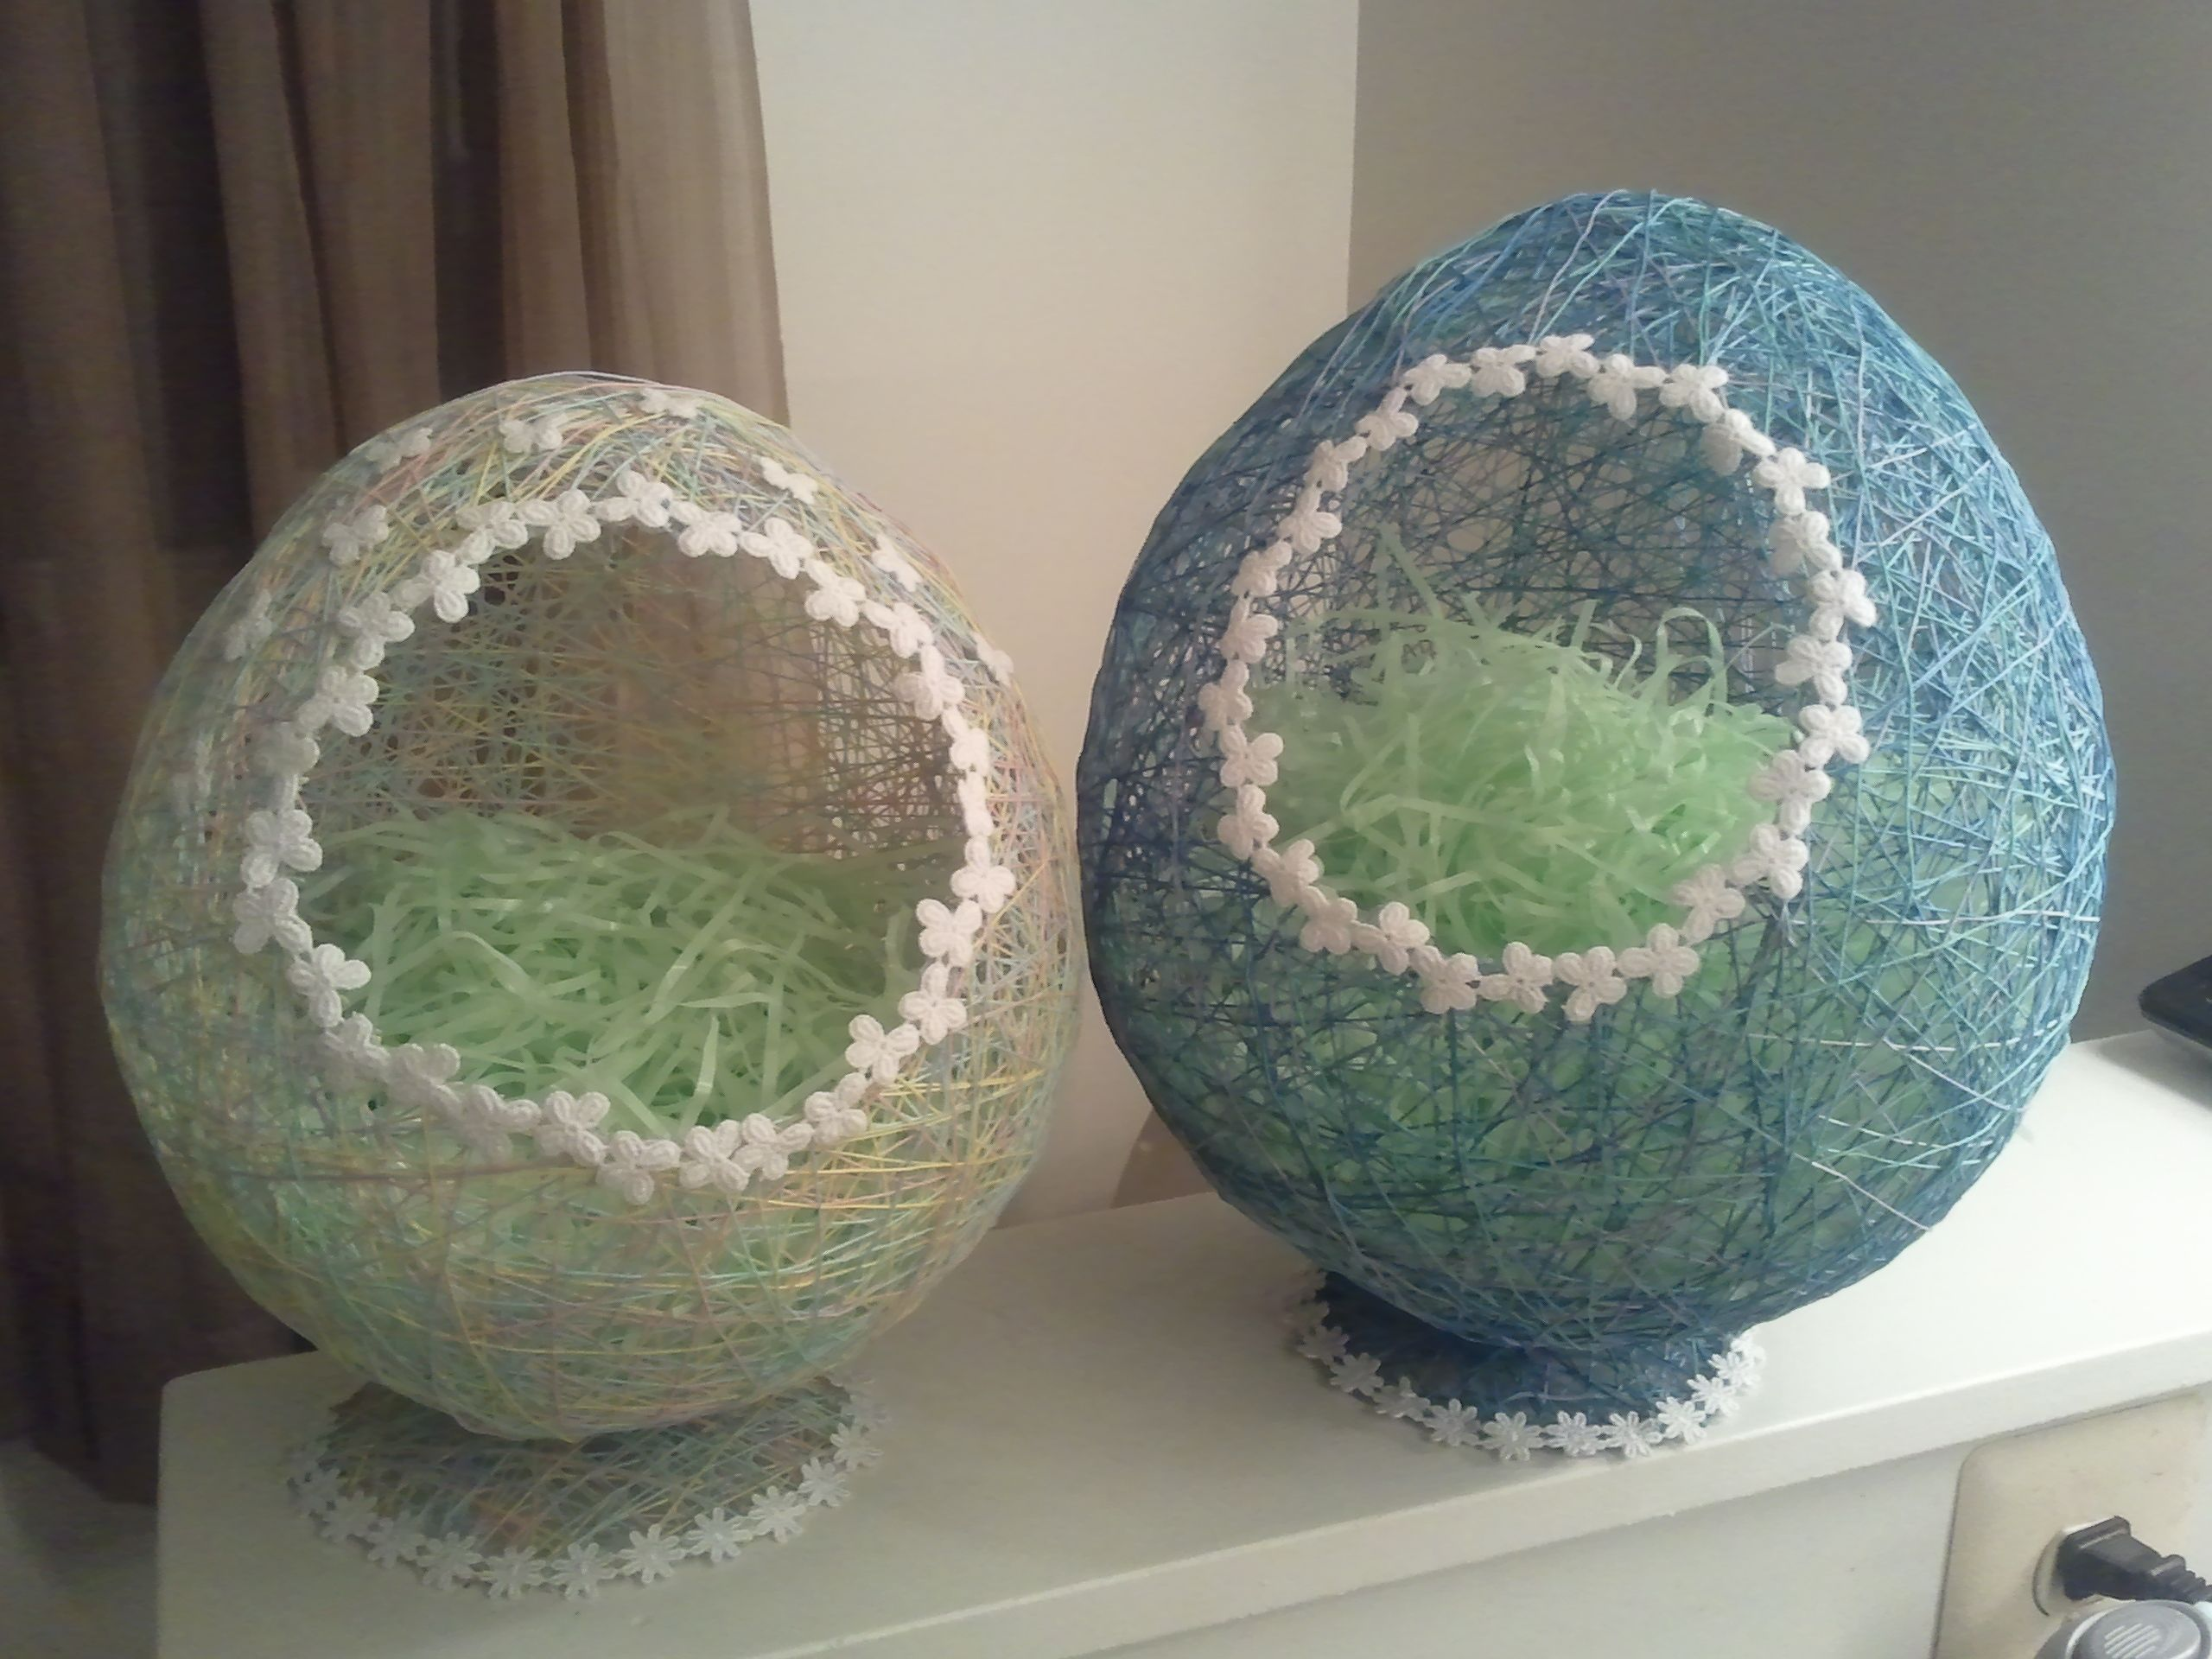 Egg baskets wrap string around a balloon blown up to the